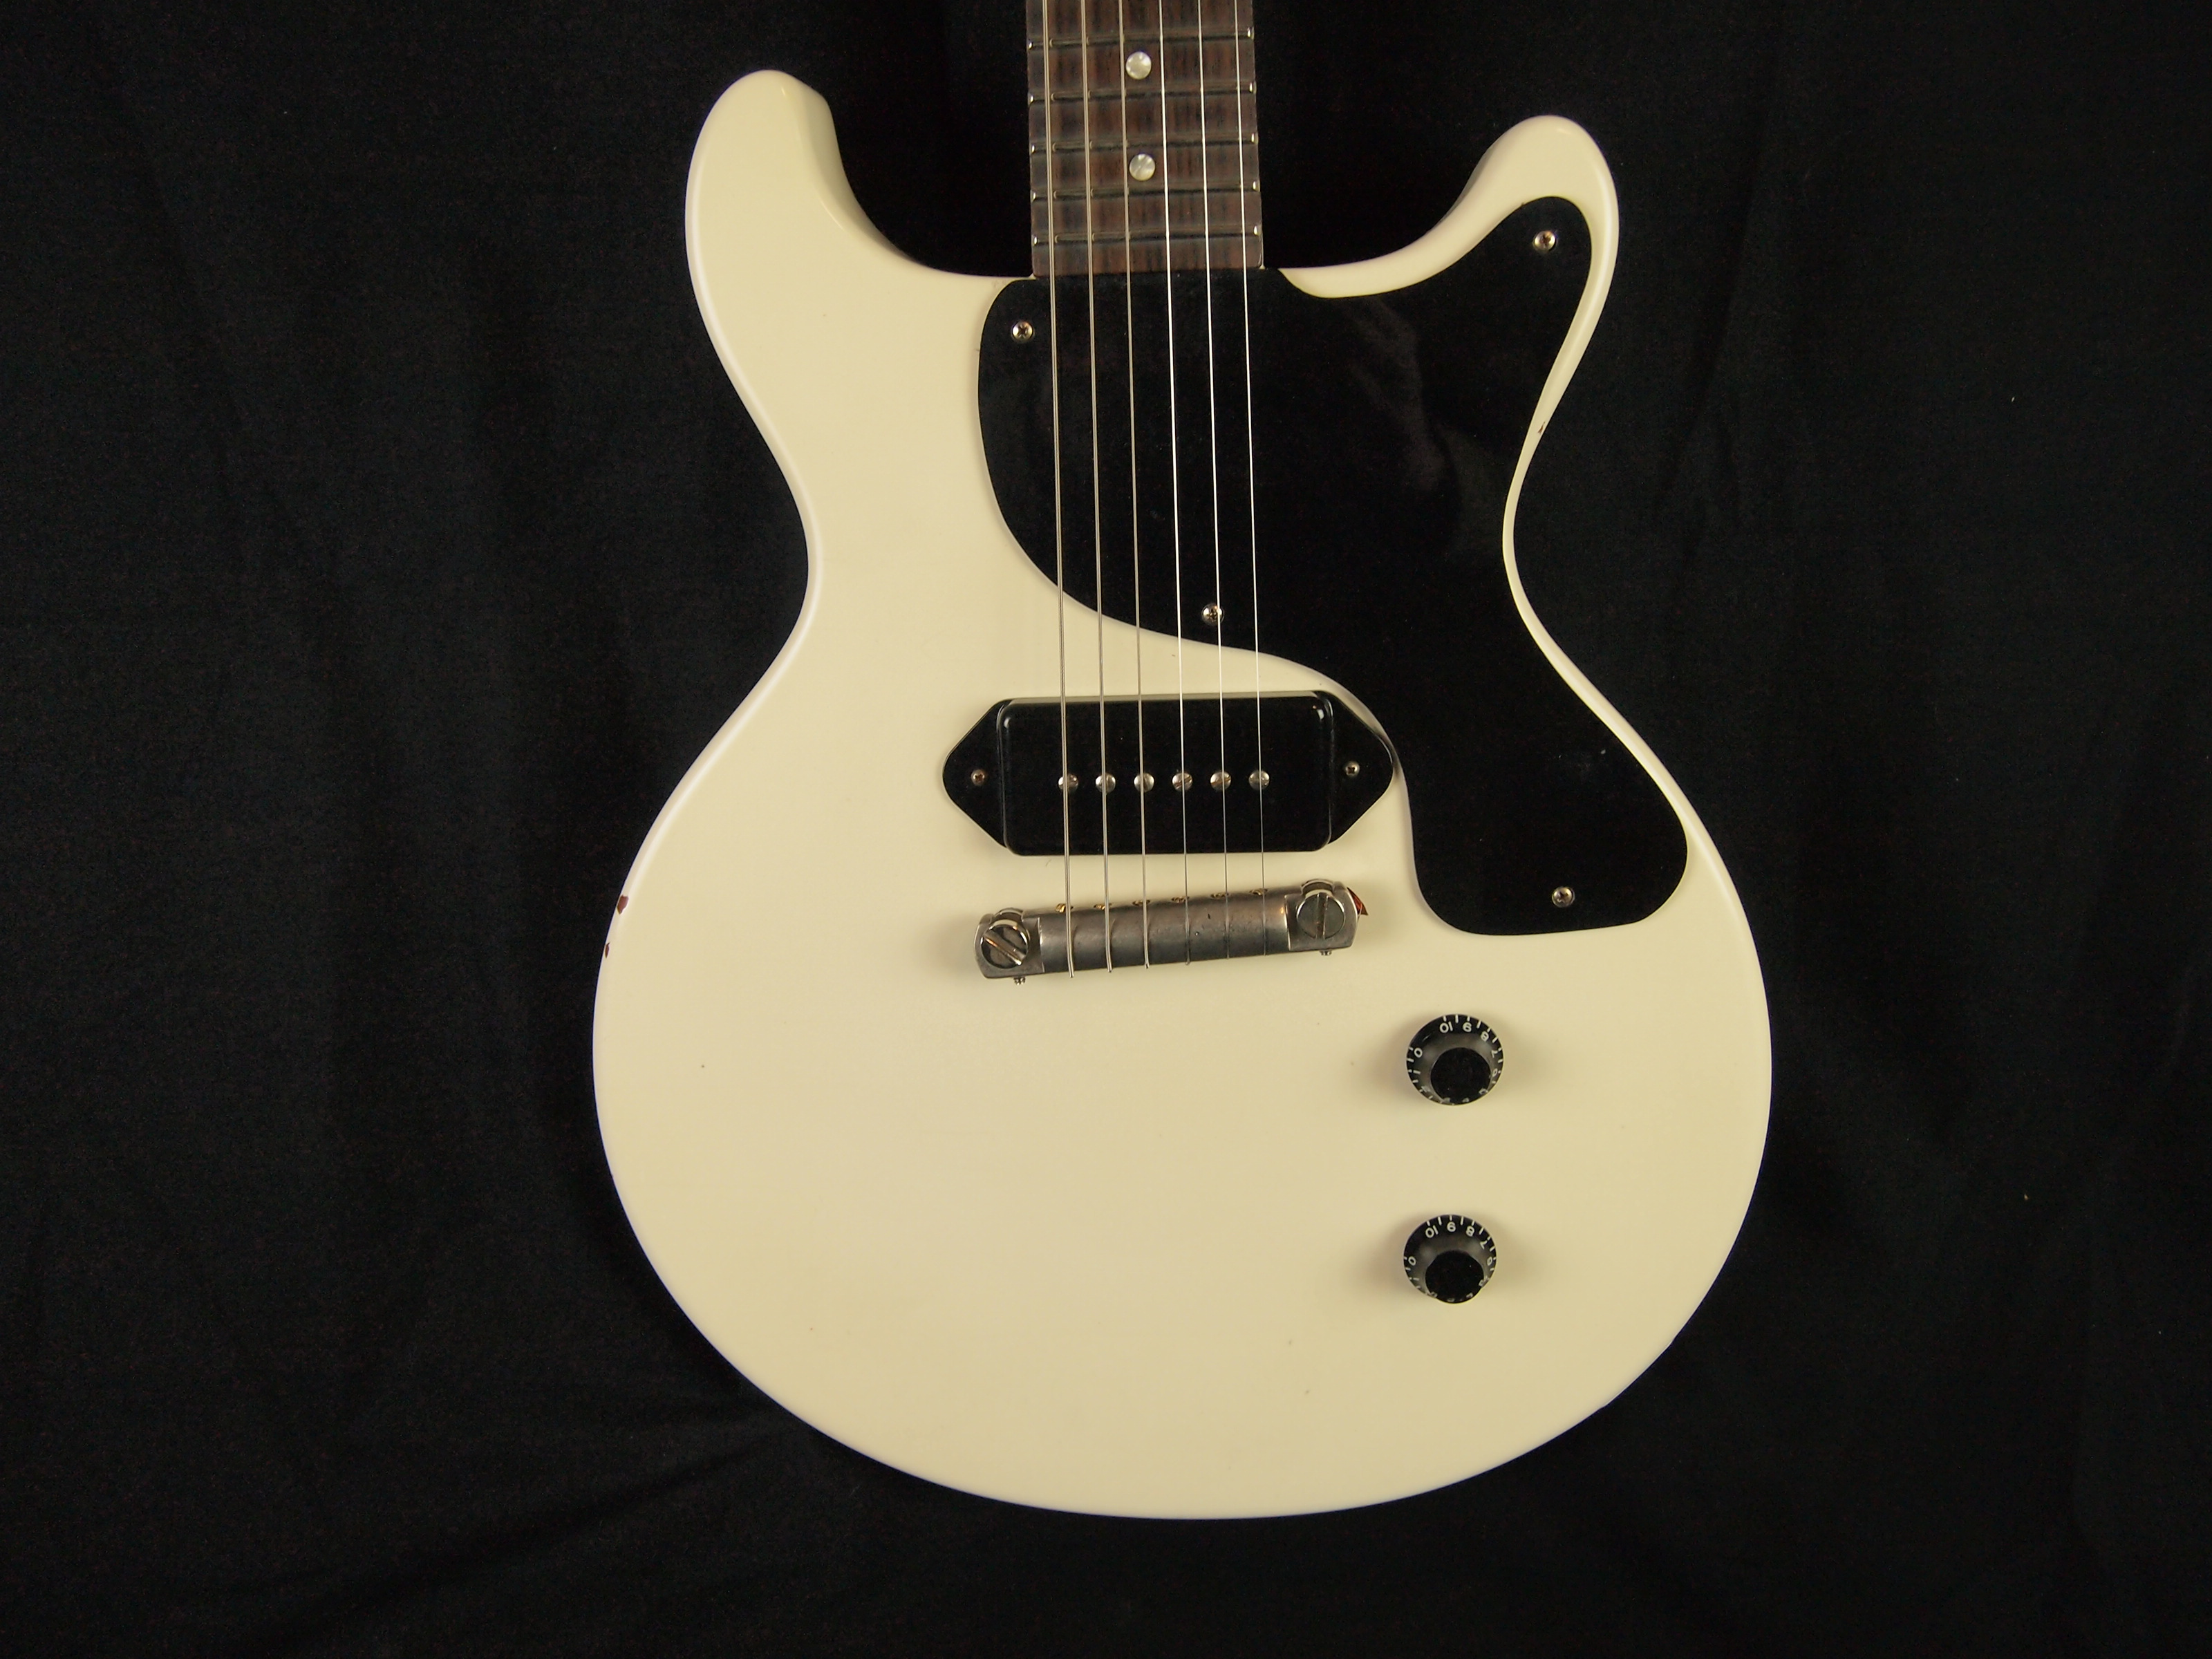 lay 39 s guitar shop white gibson les paul junior double cut refinish and relic akron ohio. Black Bedroom Furniture Sets. Home Design Ideas